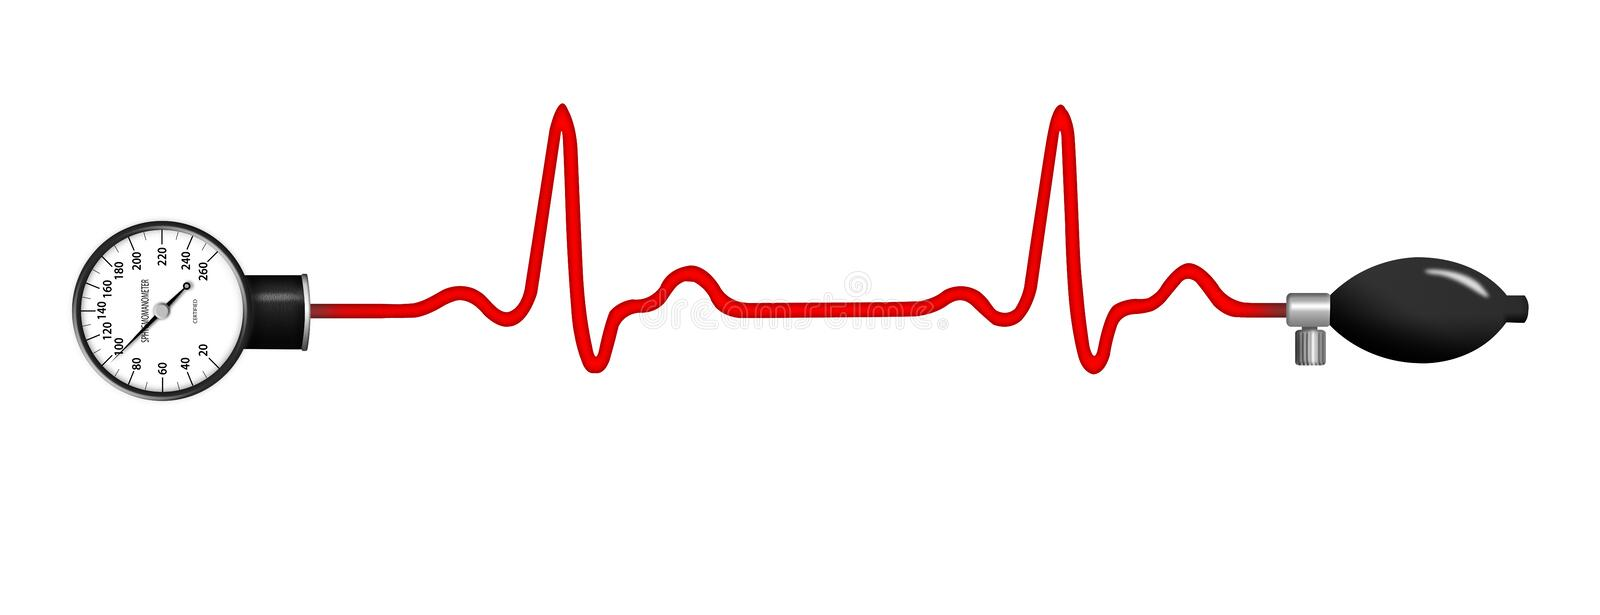 ECG graph with blood pressure gauge stock illustration